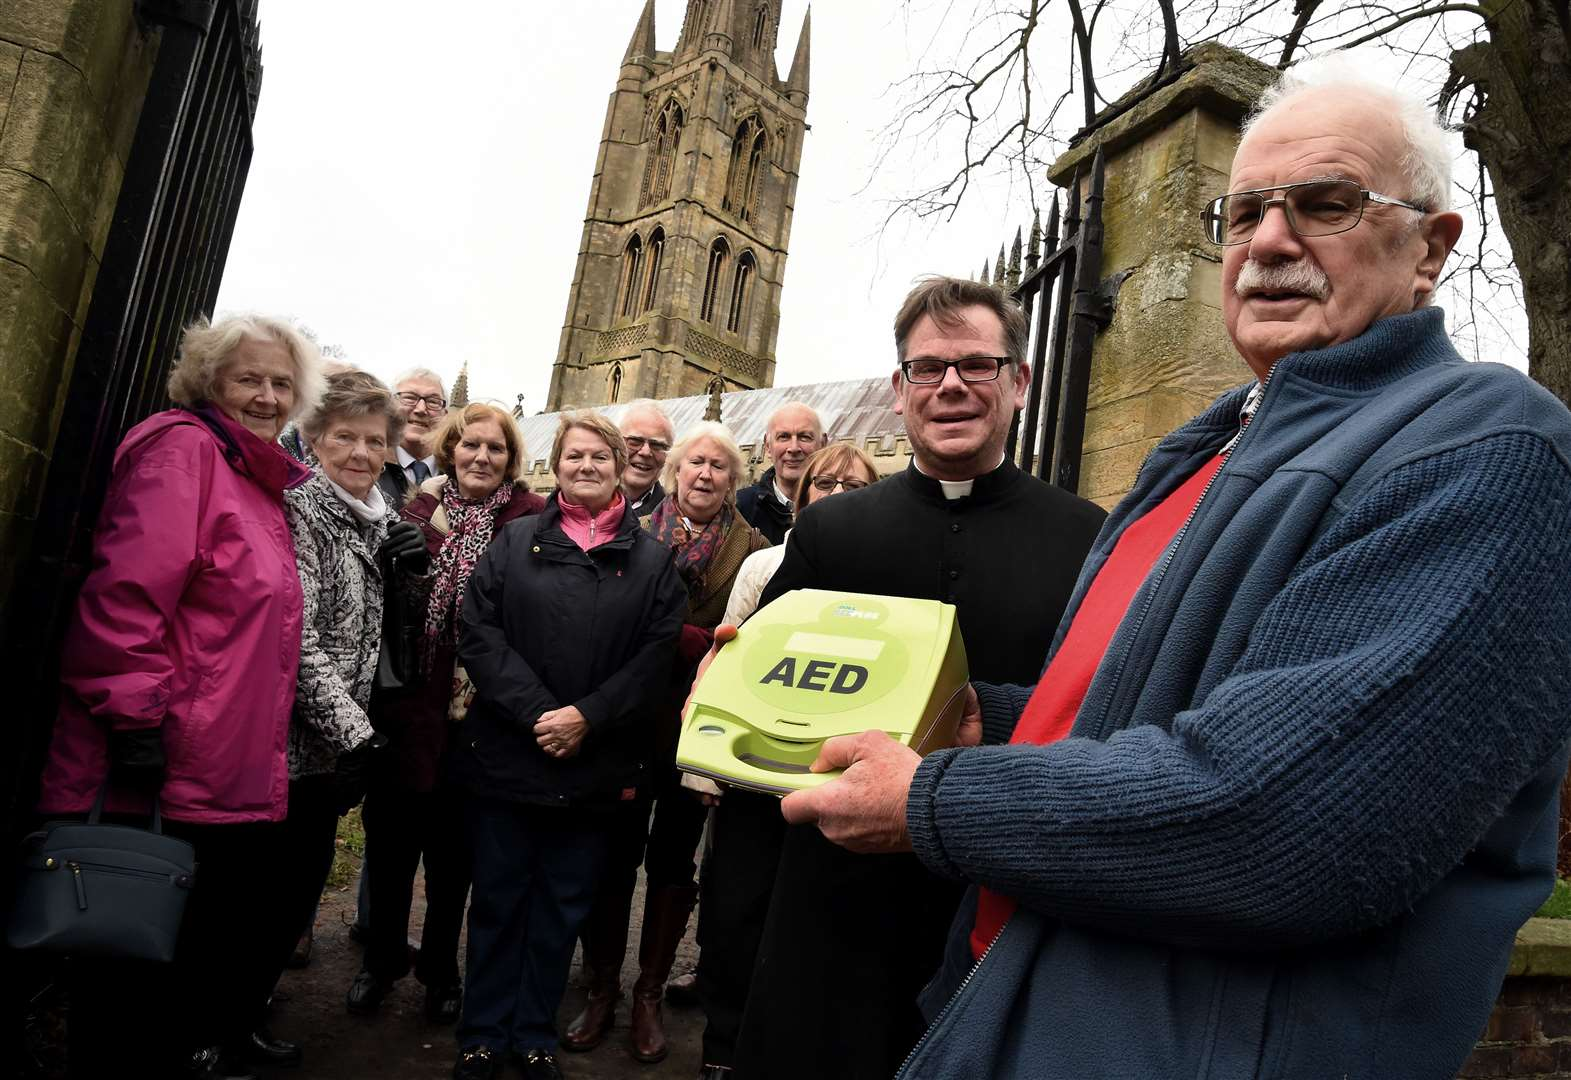 Volunteers raise £1,100 to present Grantham church with defibrillator